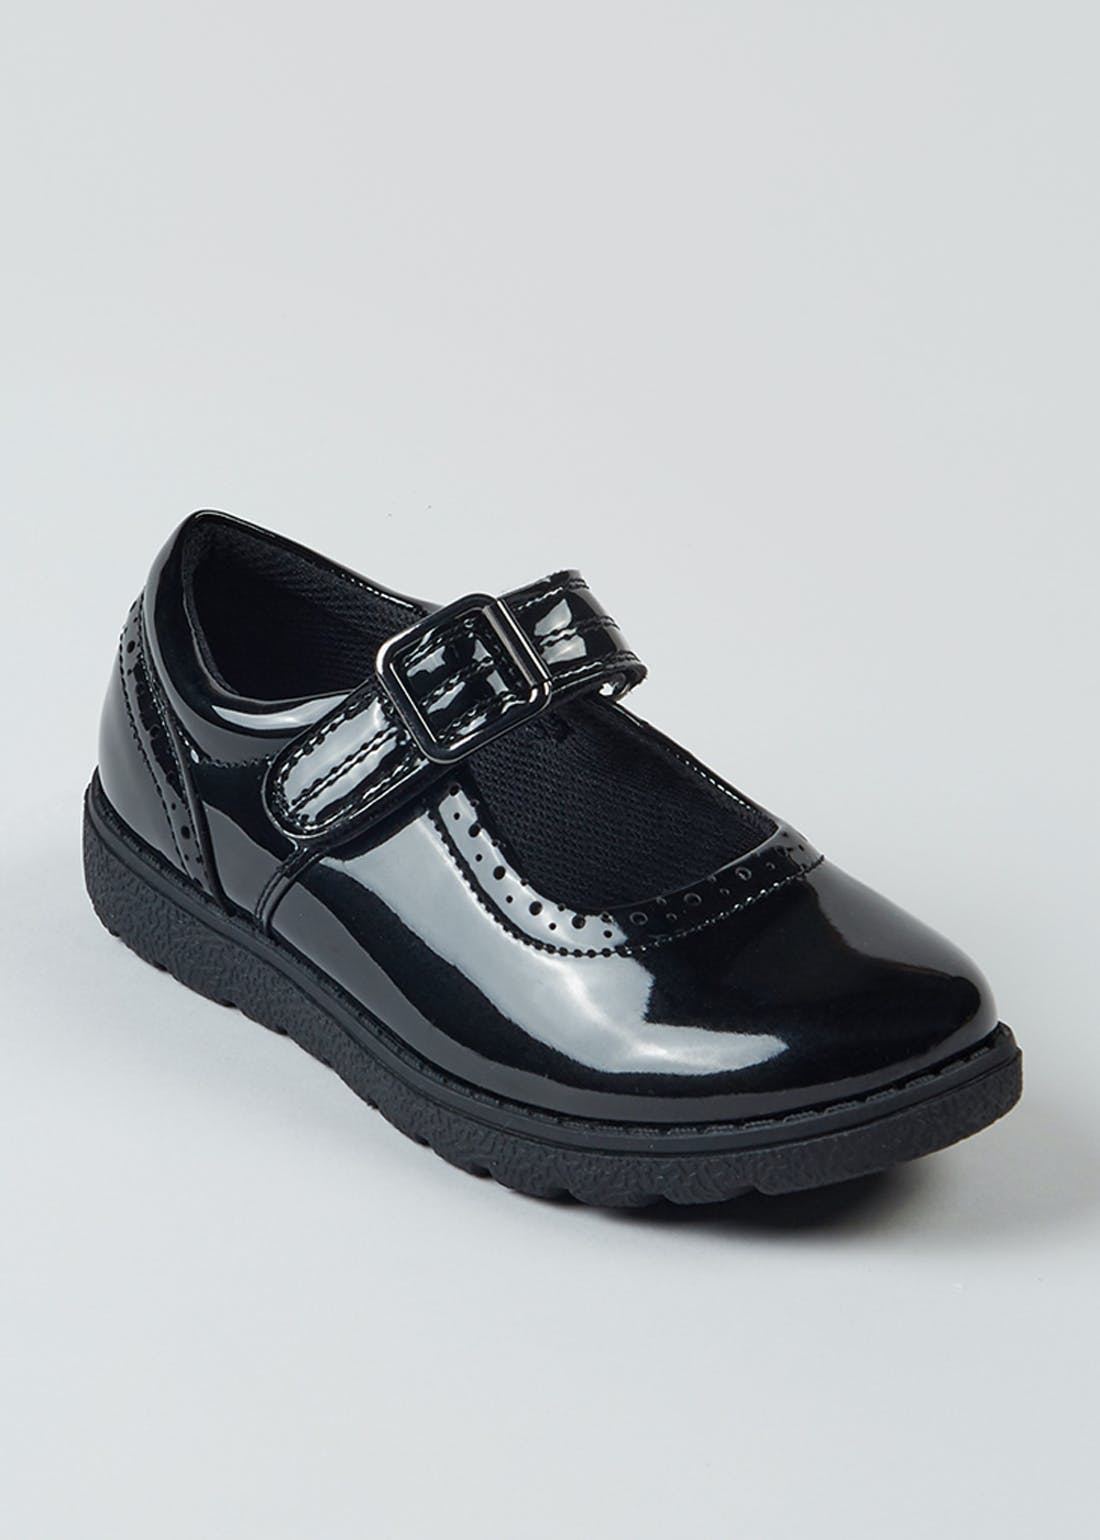 Girls Black Patent School Shoes (Younger 13-Older 5)